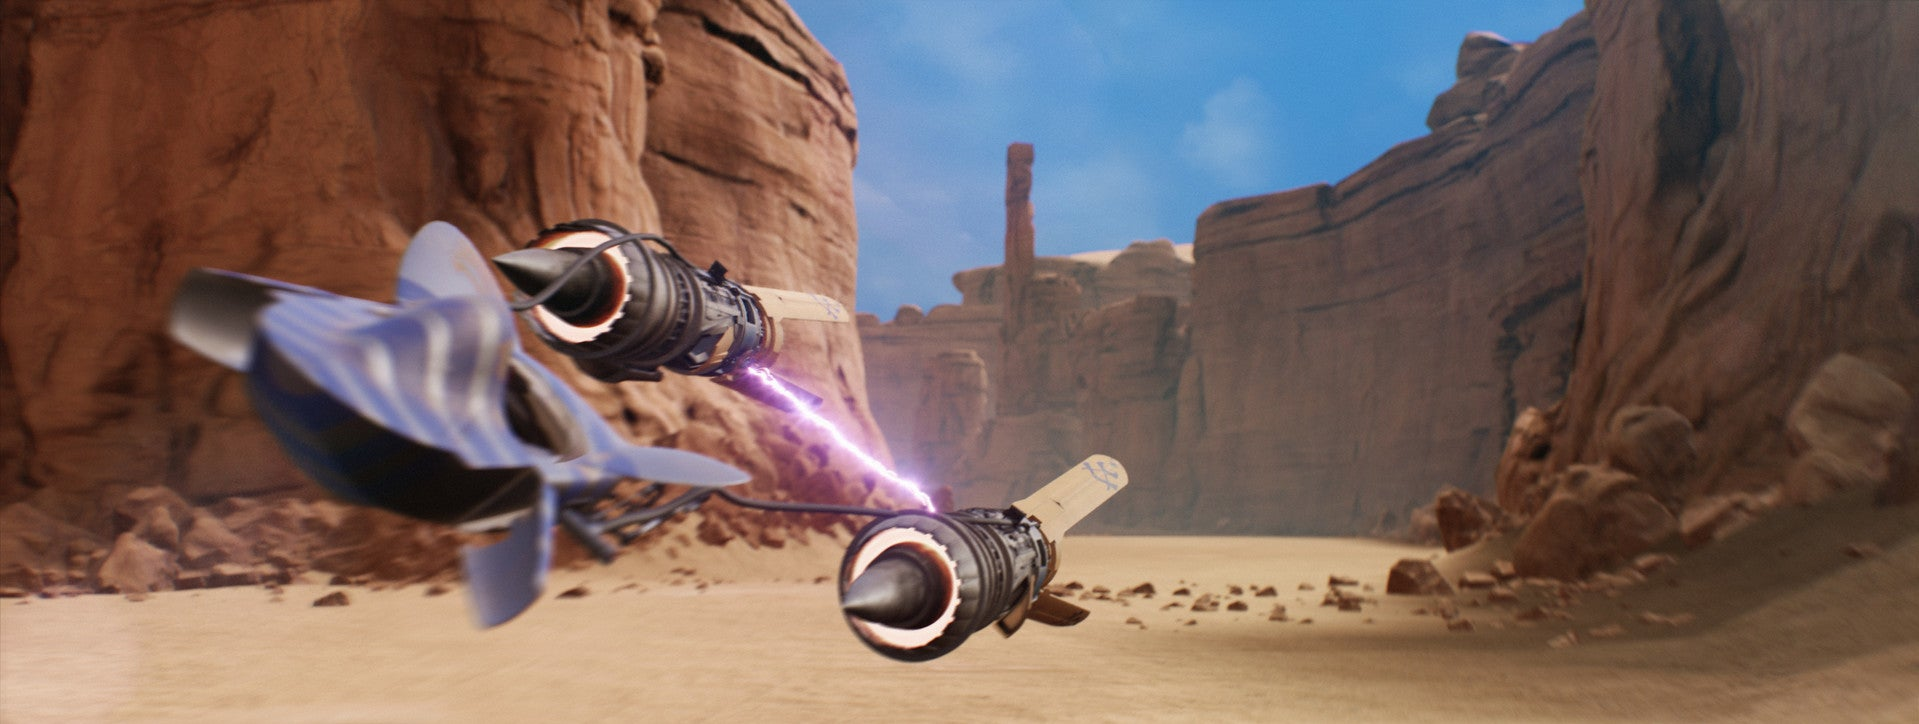 It's Episode I: Racer, Remade In Unreal Engine 4